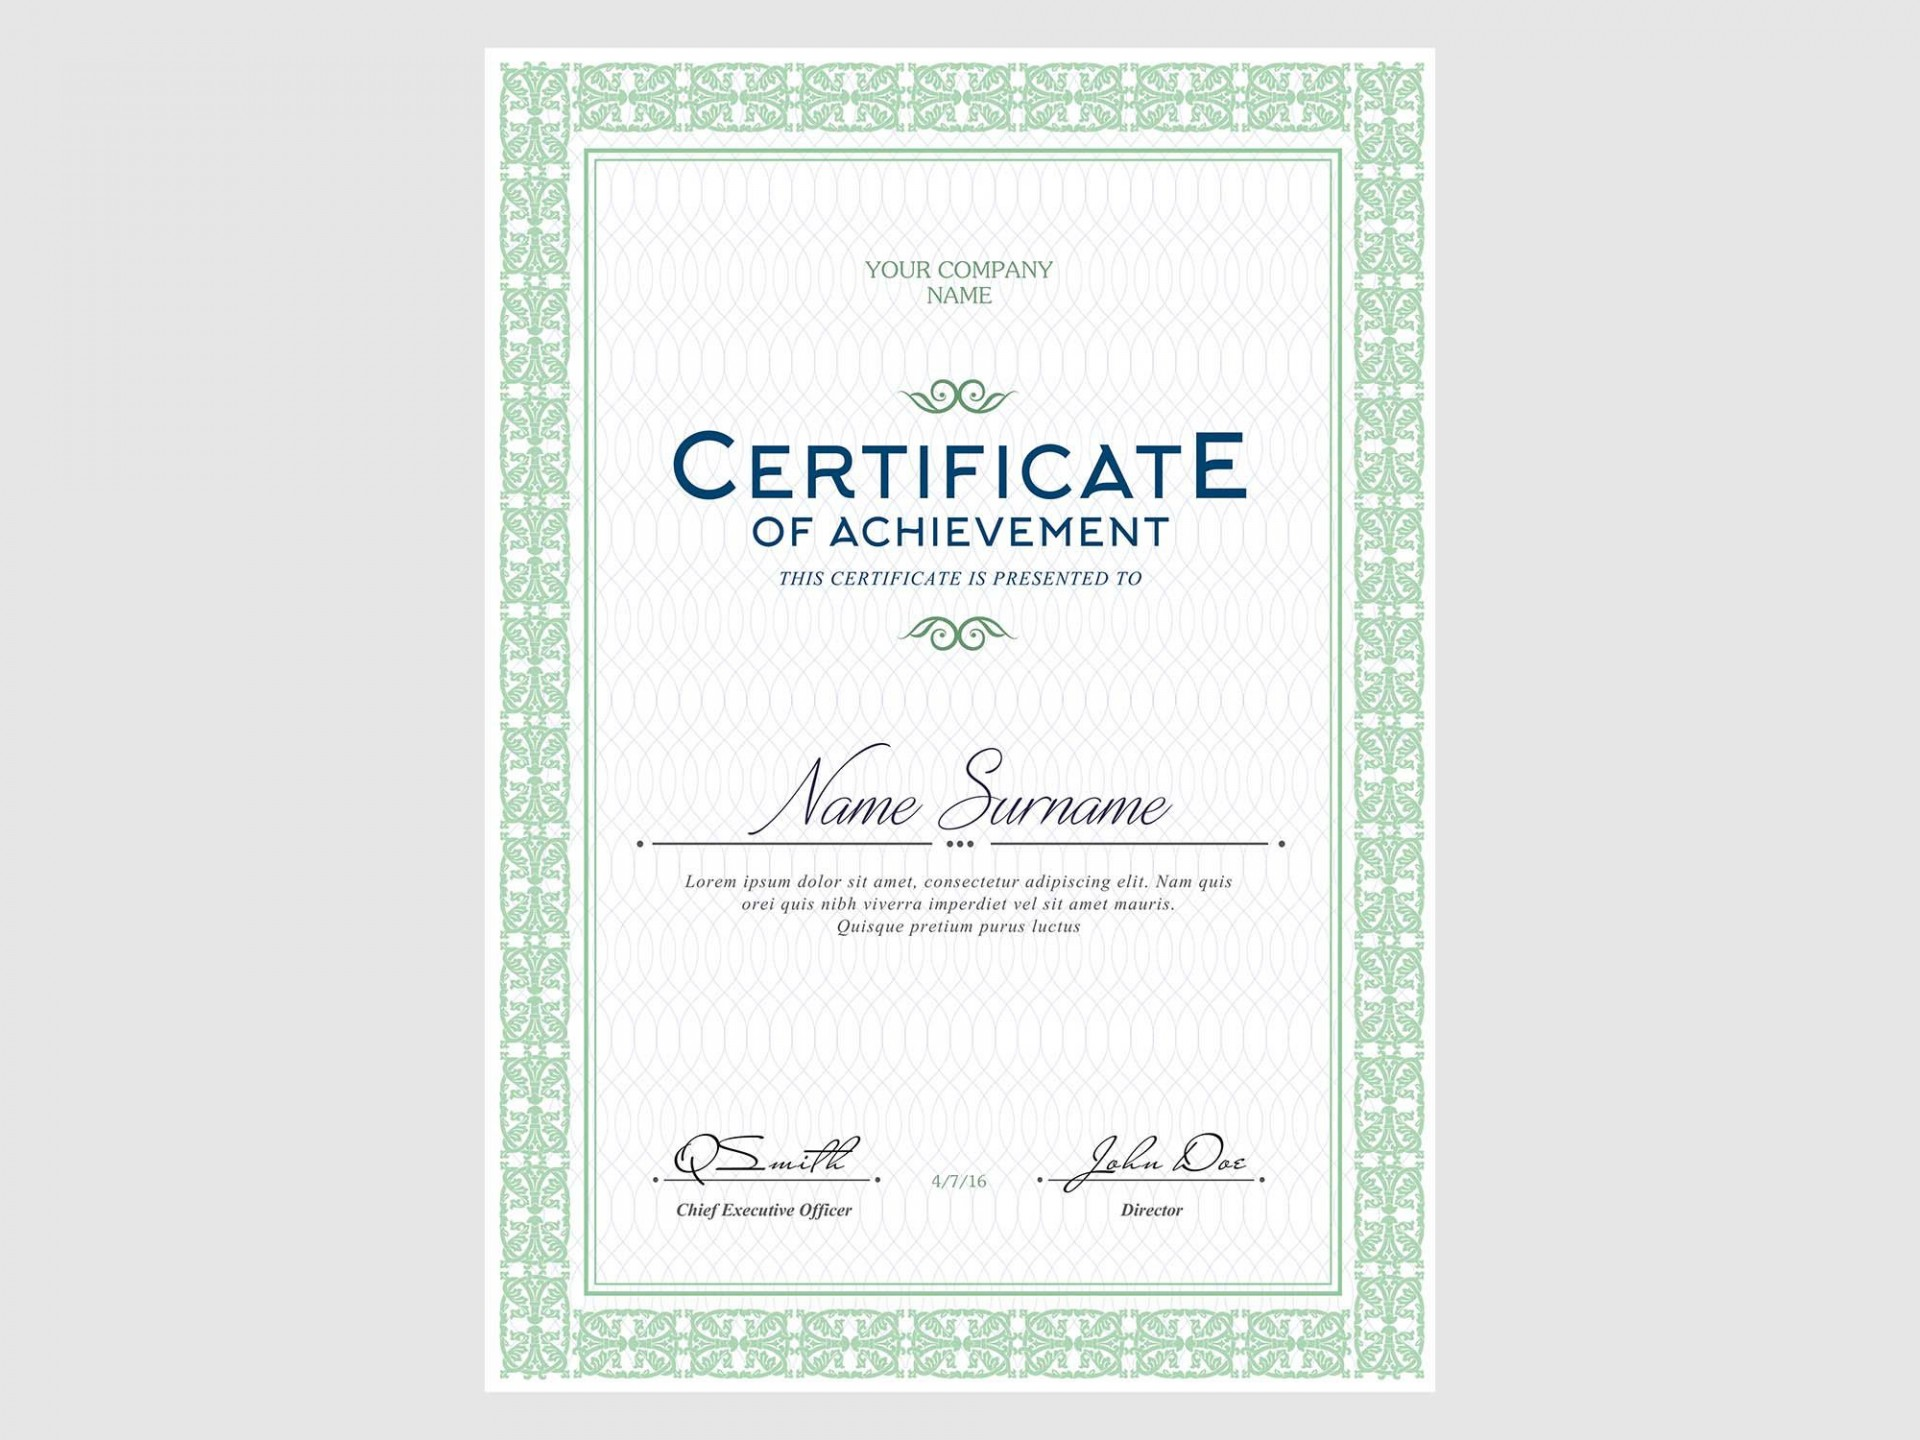 006 Rare Free Template For Certificate Concept  Certificates Online Of Completion Attendance Printable Participation1920